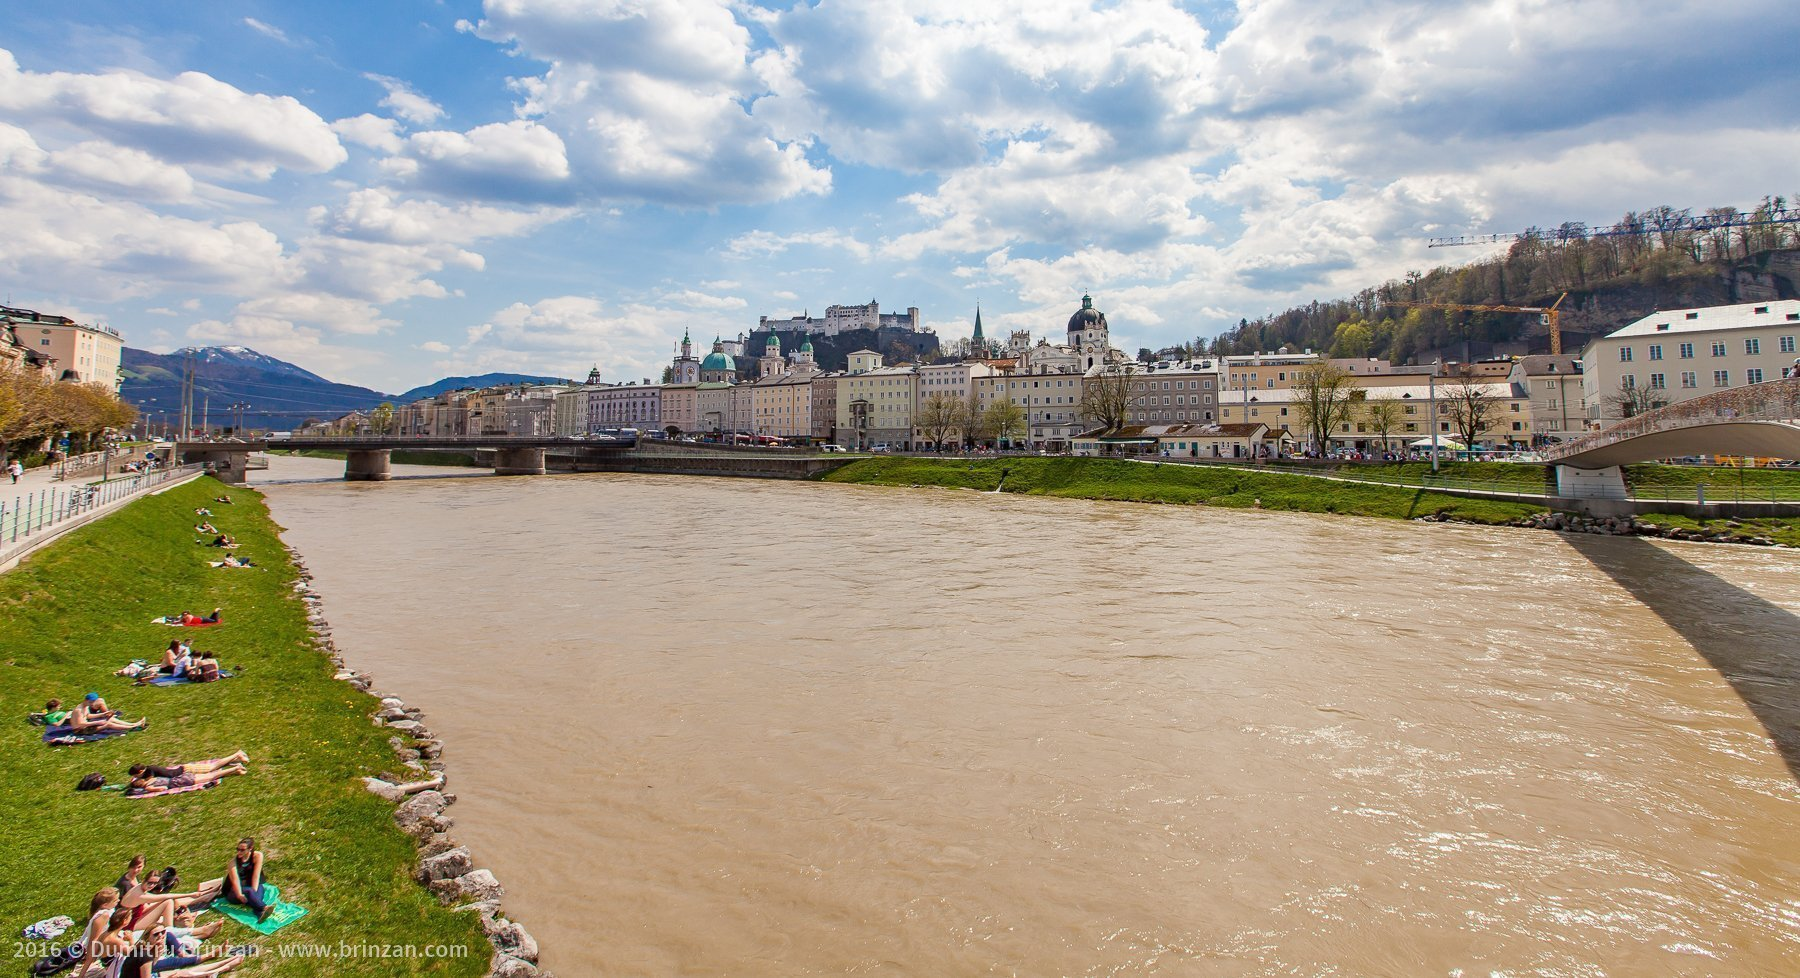 Salzburg is pierced by the Salzach River. The banks of the river are used for sunbathing.